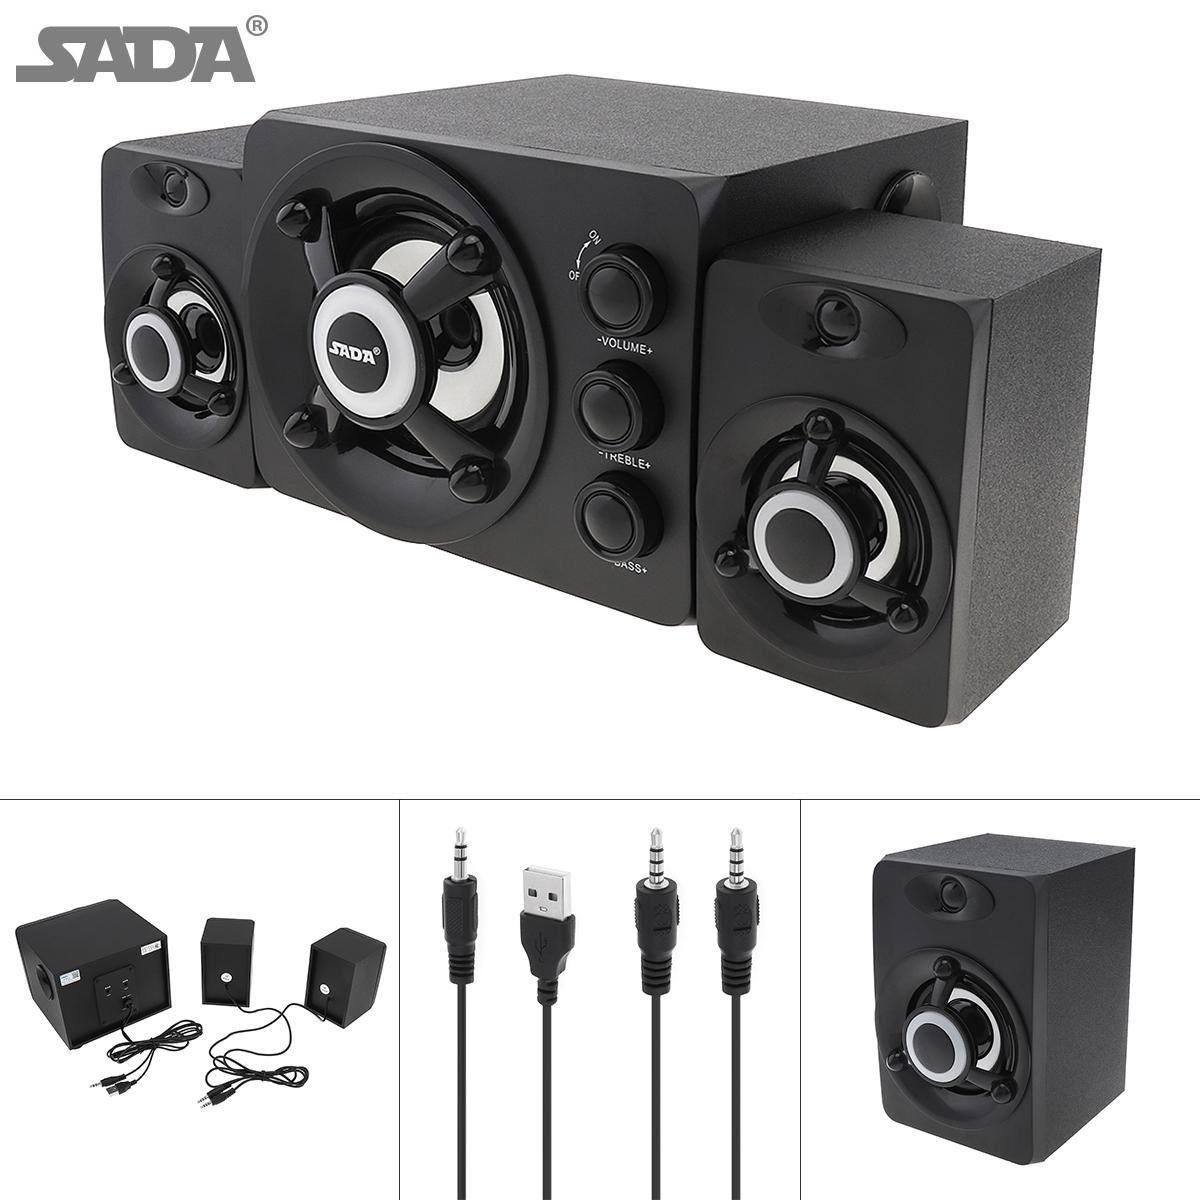 SADA D-208 2.1 Mini Black 3W Wooden 3D Surround Sound Subwoofer Music USB Computer Speaker with Luminescent Multicoloured Lamp SSB_10M